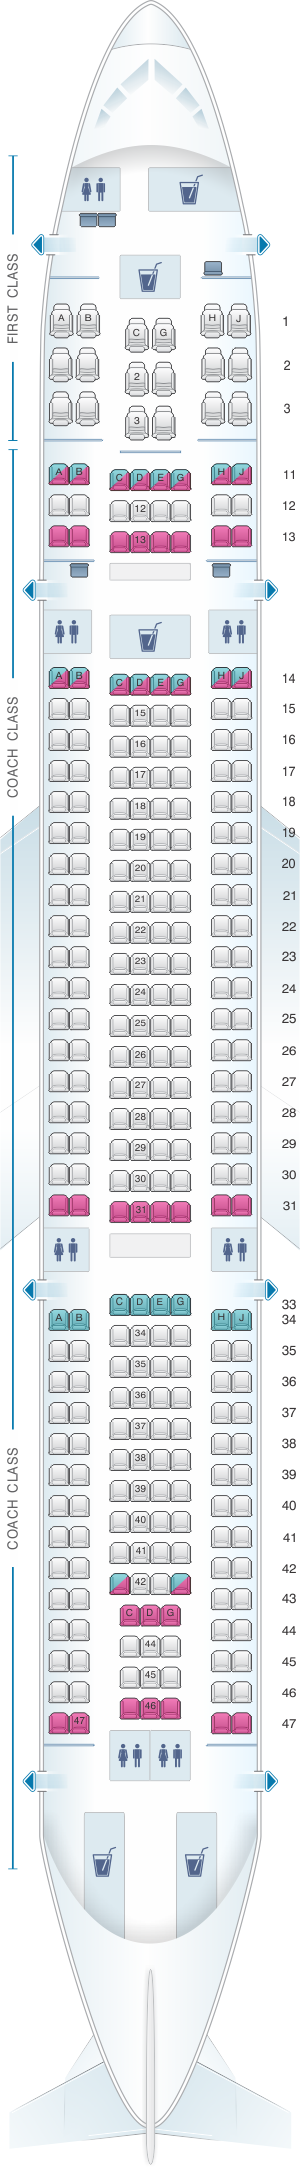 Turkish Airlines Seating Chart A330 Brokeasshome Com